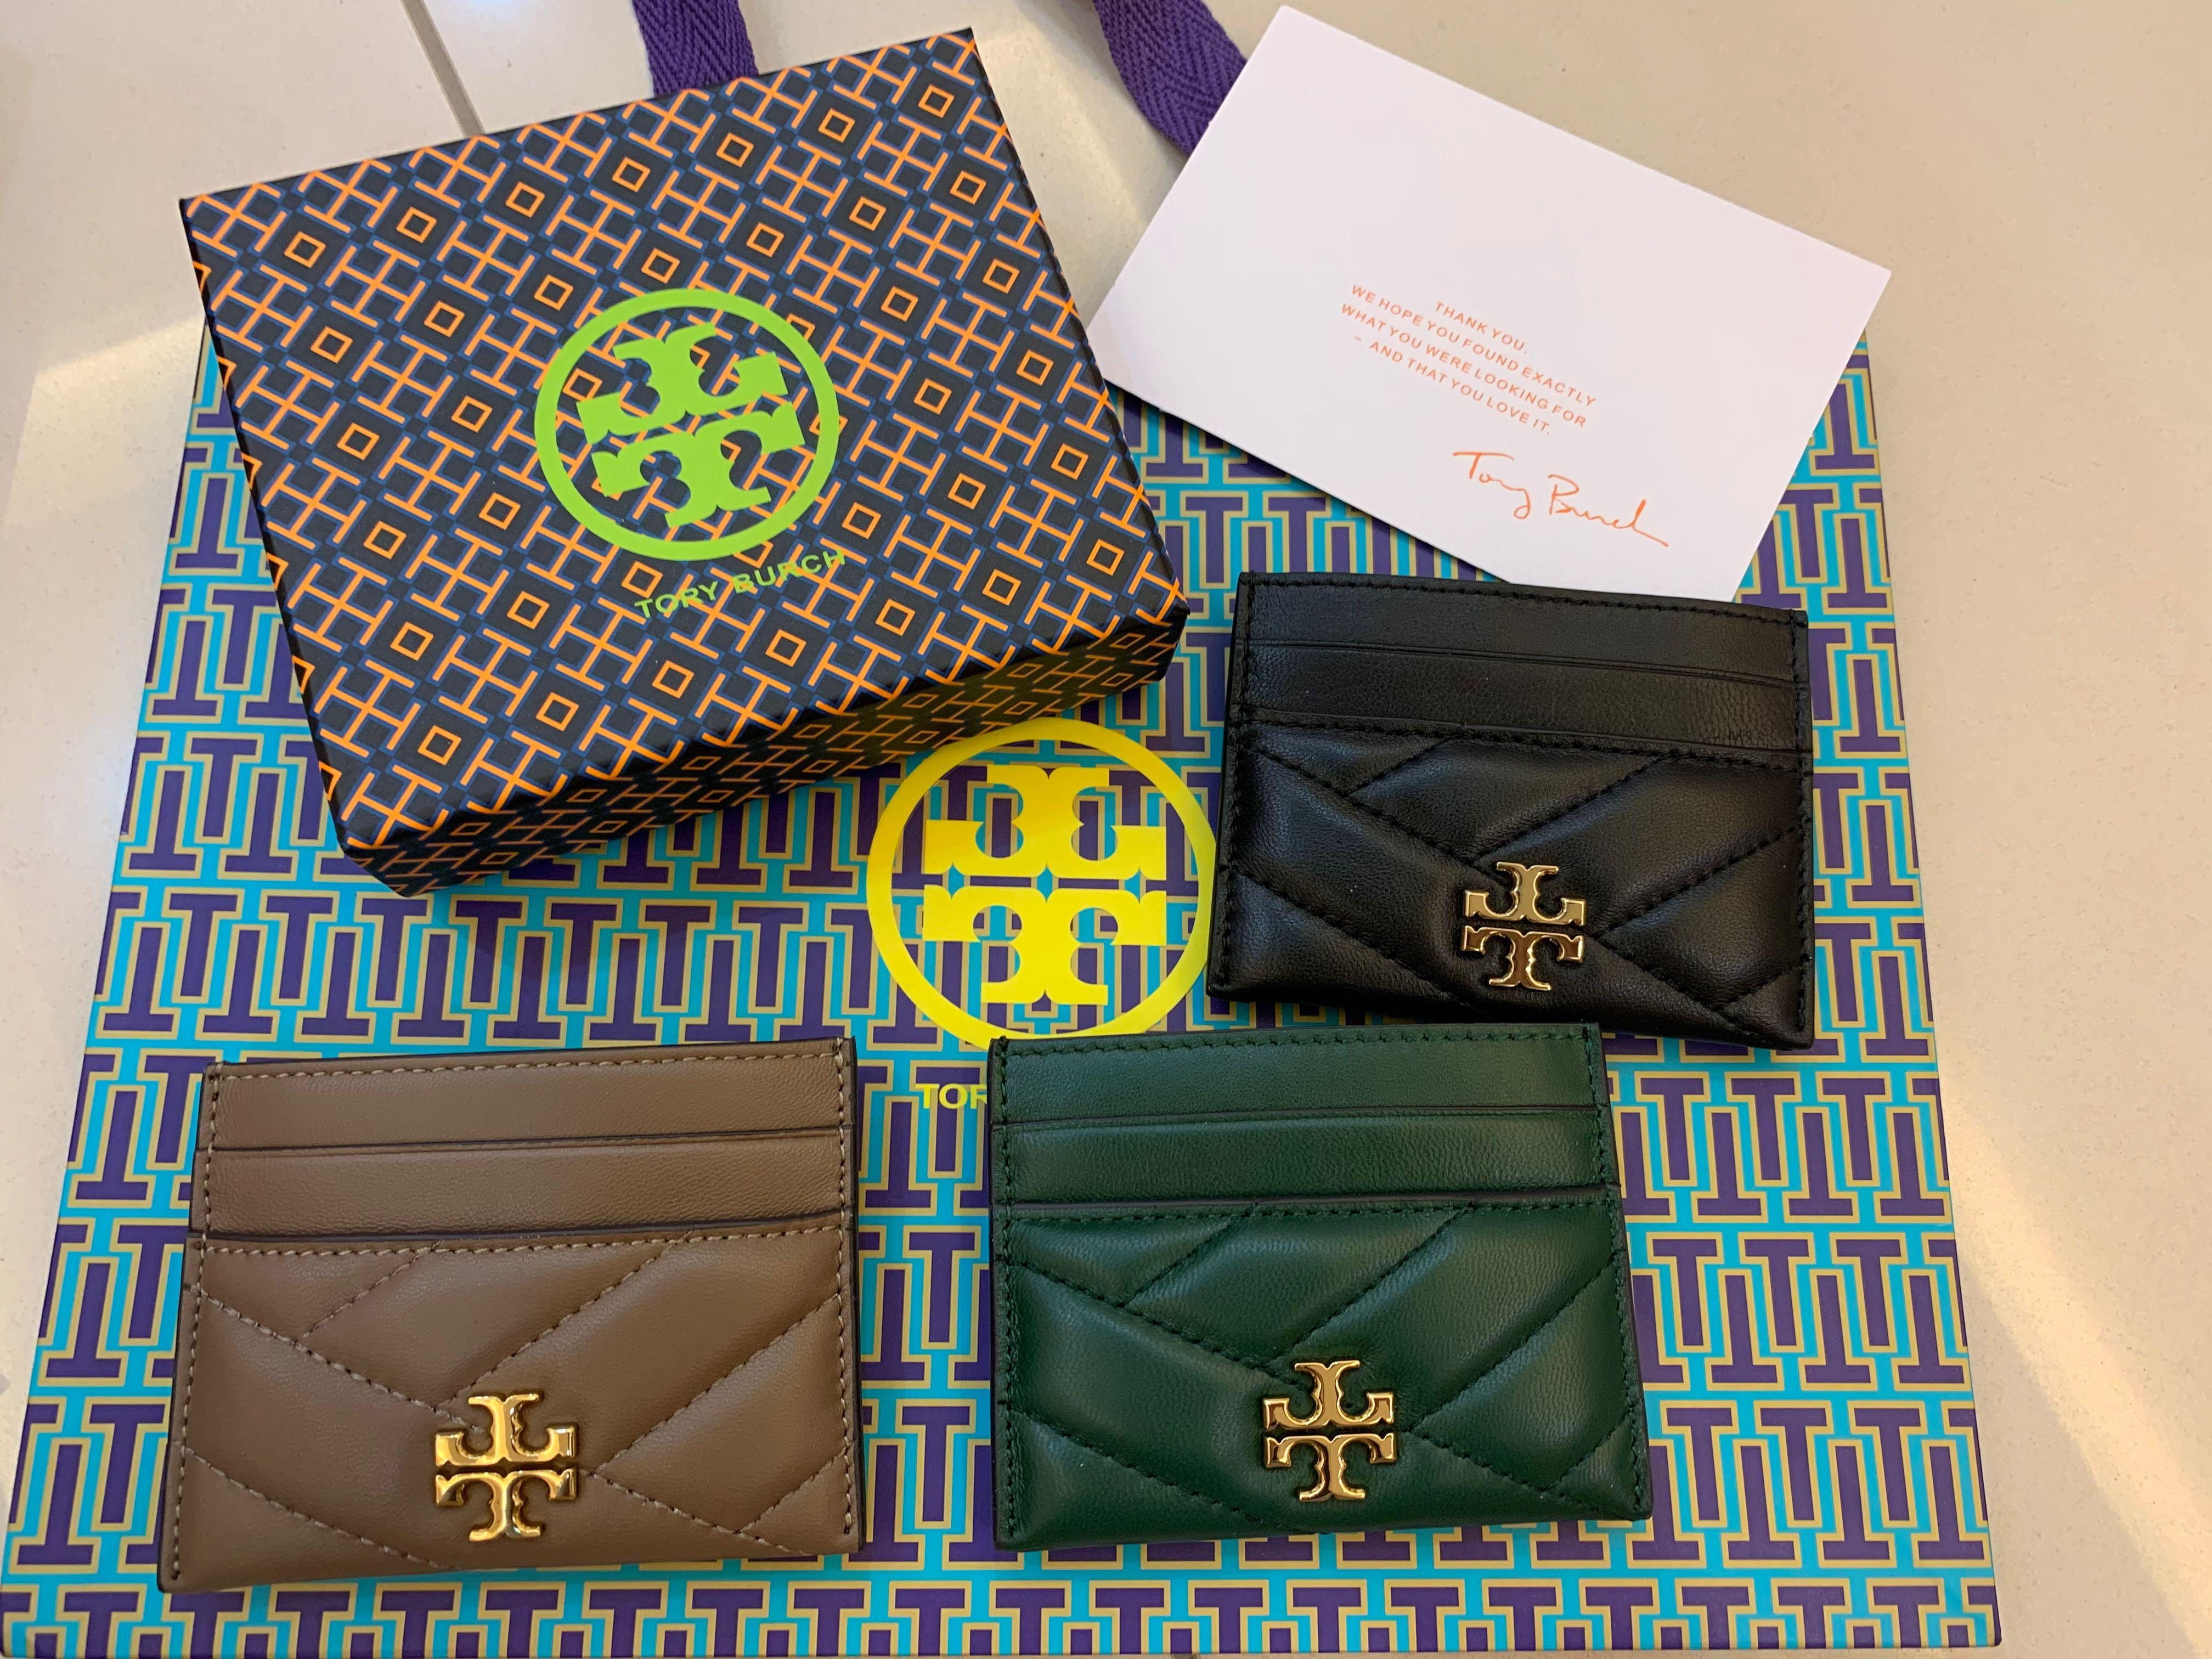 Ready Stock Authentic Tory Burch Kira Fleming material card holder calf leather ubb